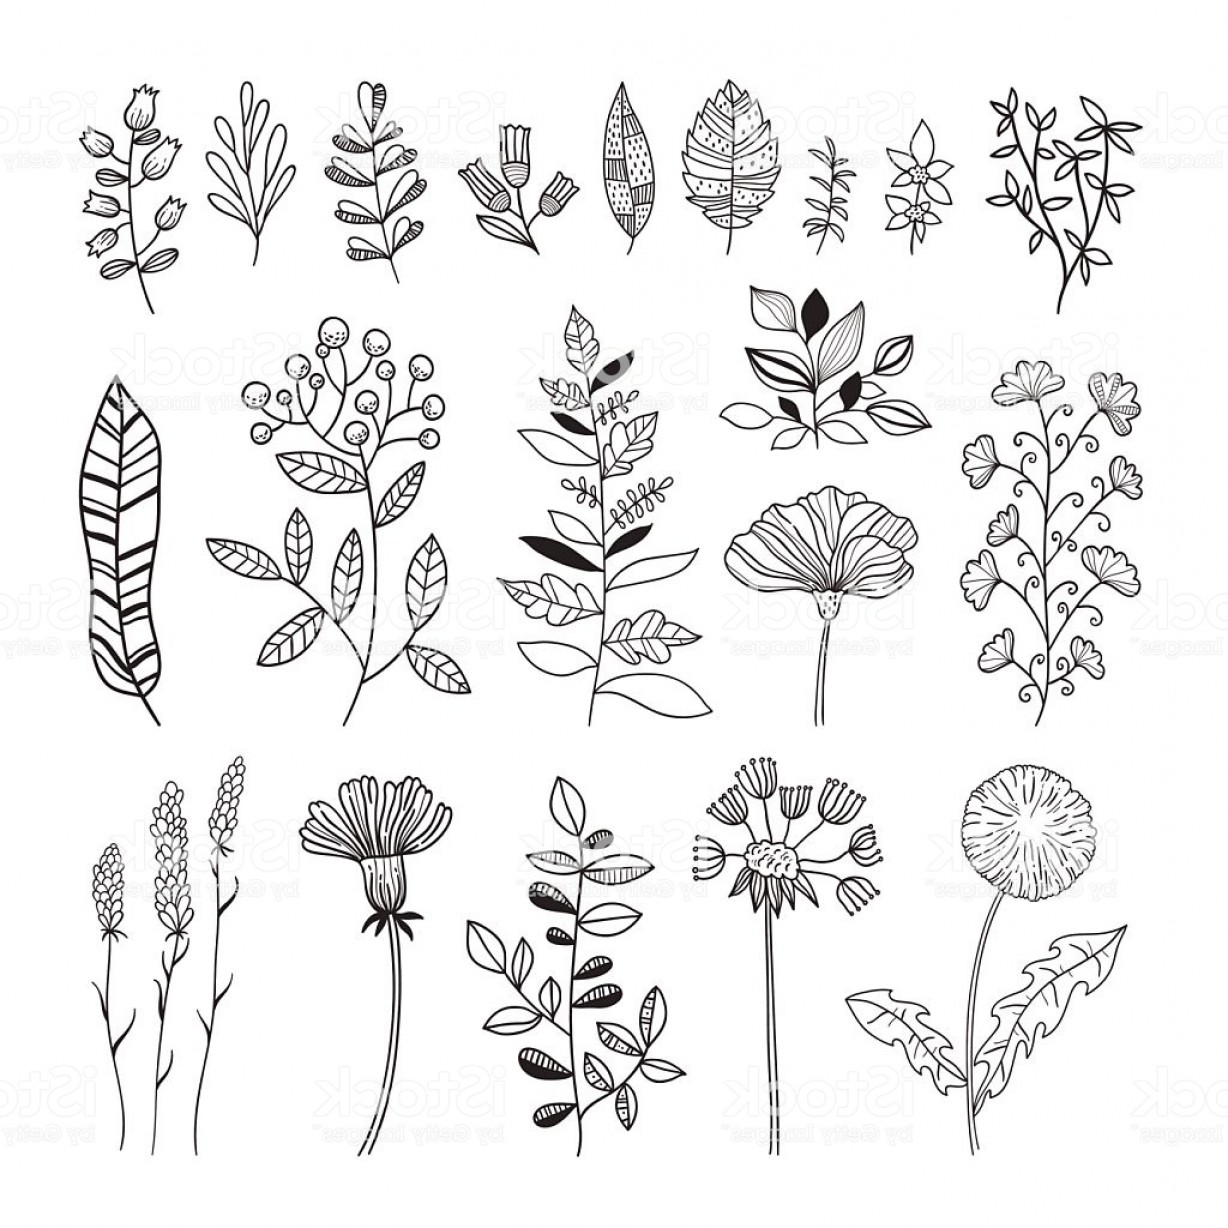 Botanical Flower Vectors: Floral Botanical Vector Set Hand Drawn Flowers And Plants Gm